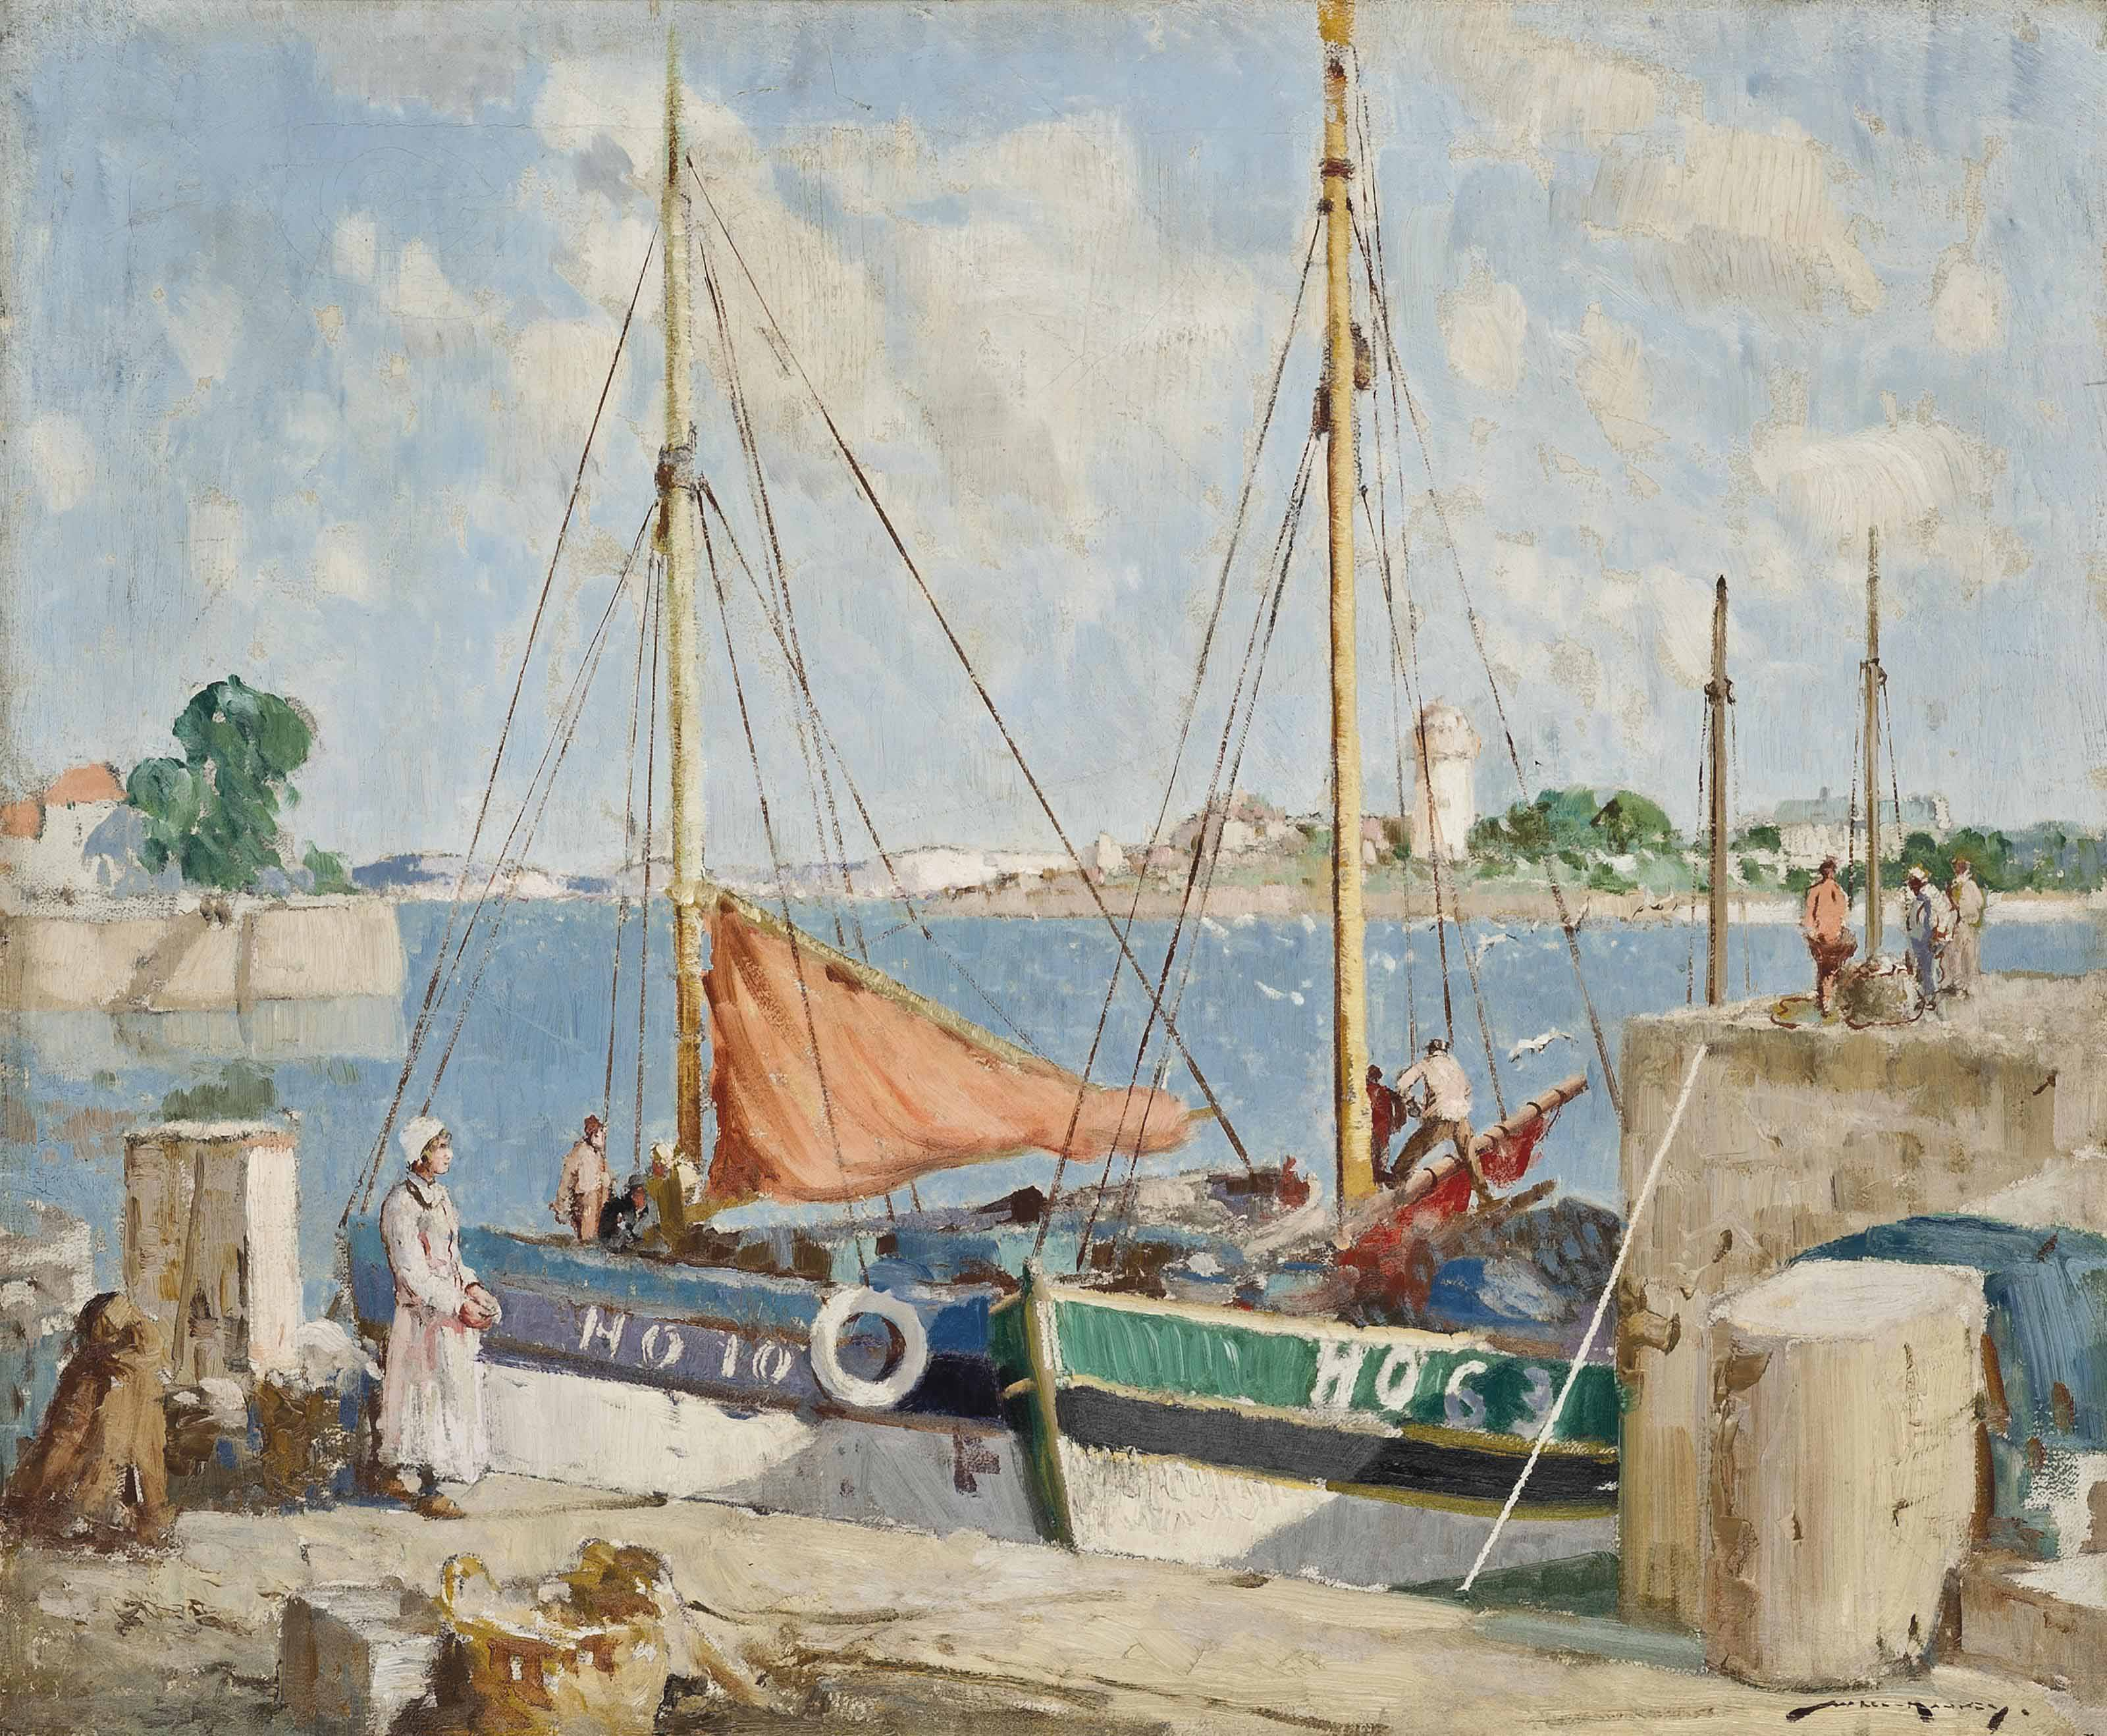 After the catch, Honfleur